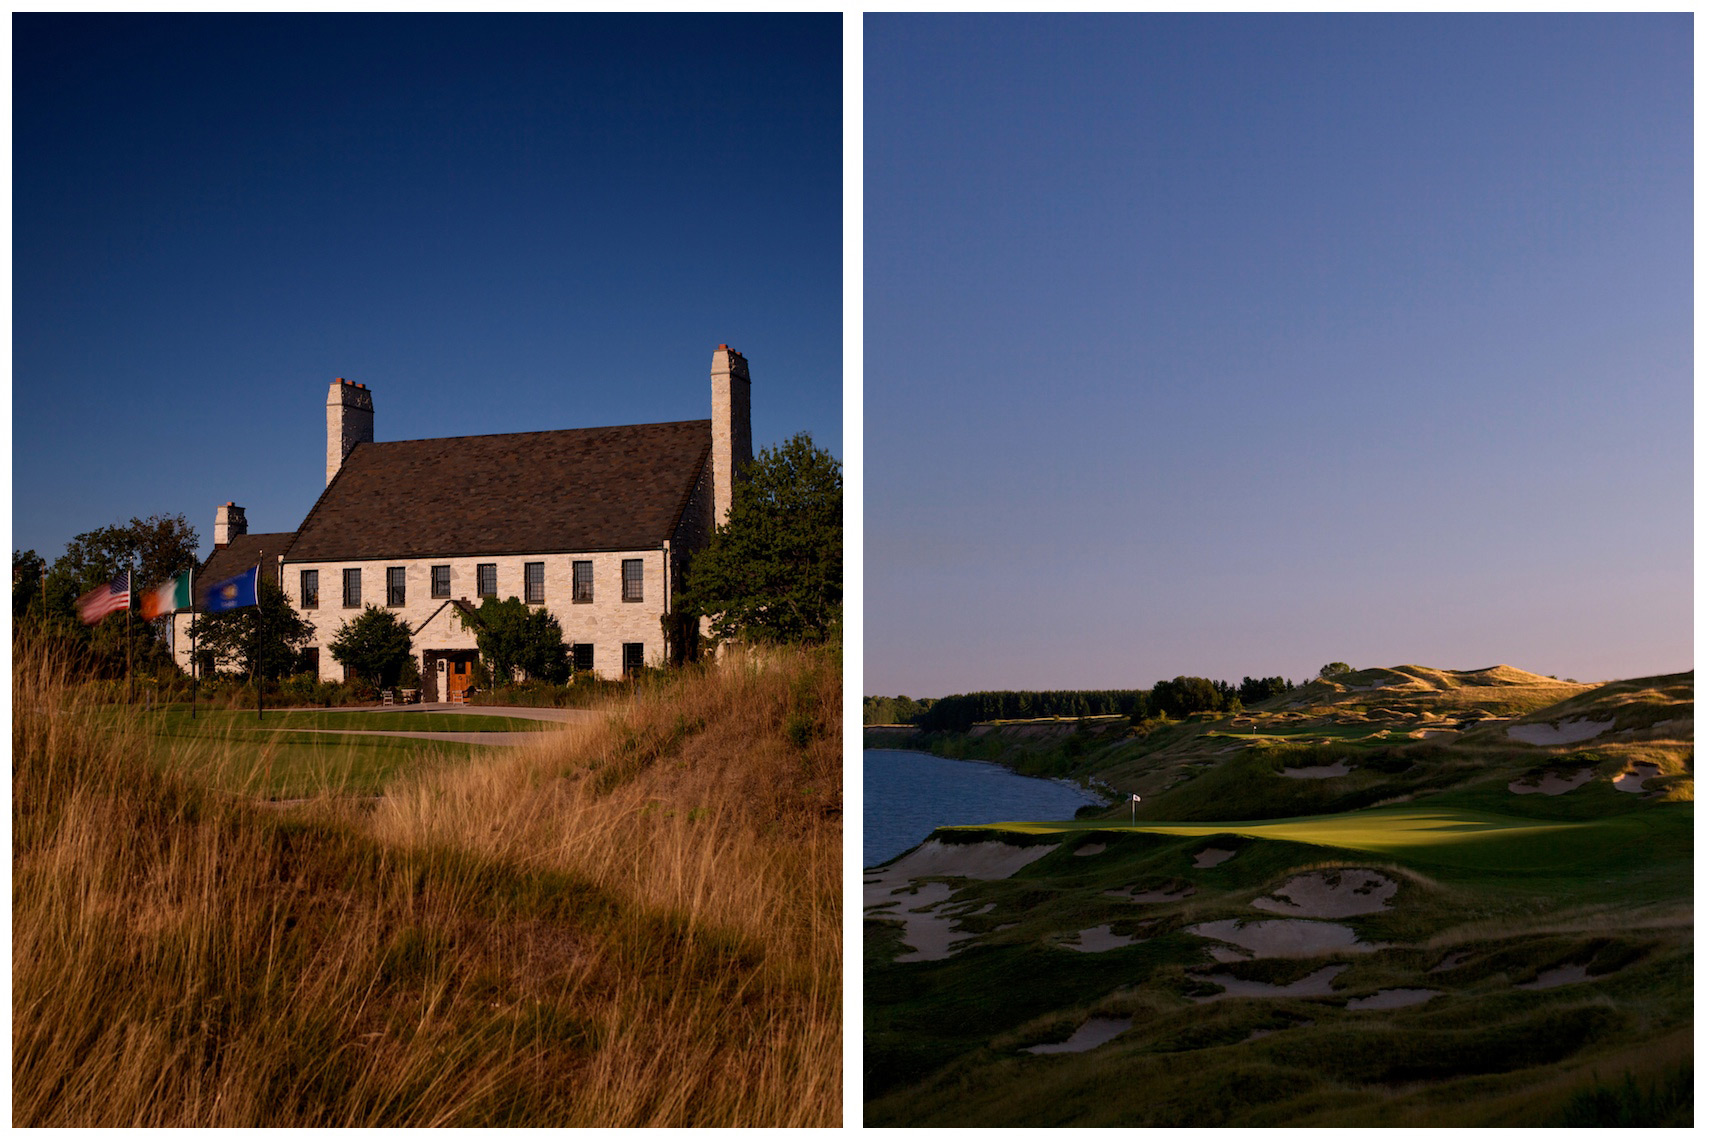 Clubhouse and 3rd hole at Whistling Straits in Kohler, Wisconsin